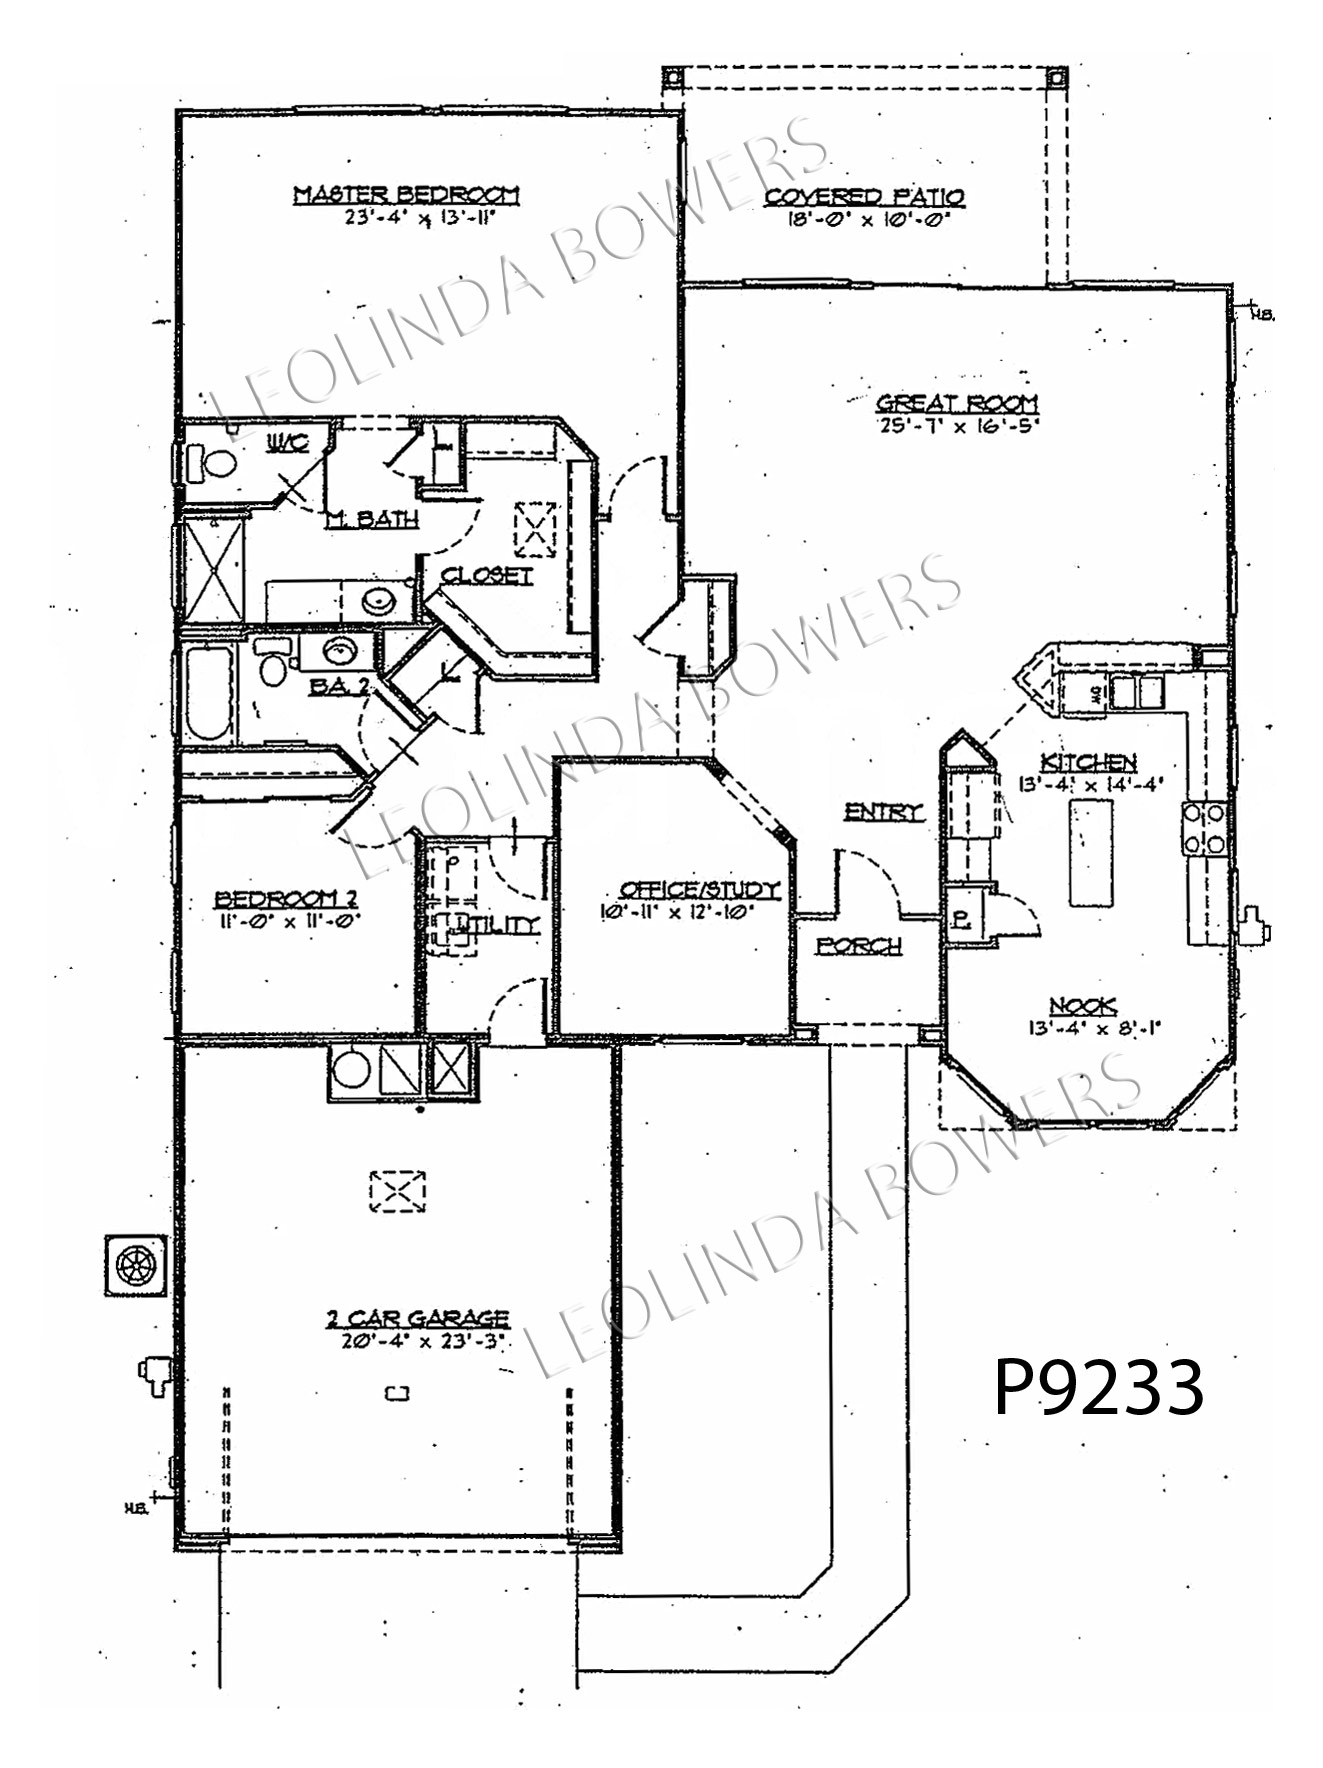 Find Sun City Grand Sierra floor plans – Leolinda Bowers Realtor